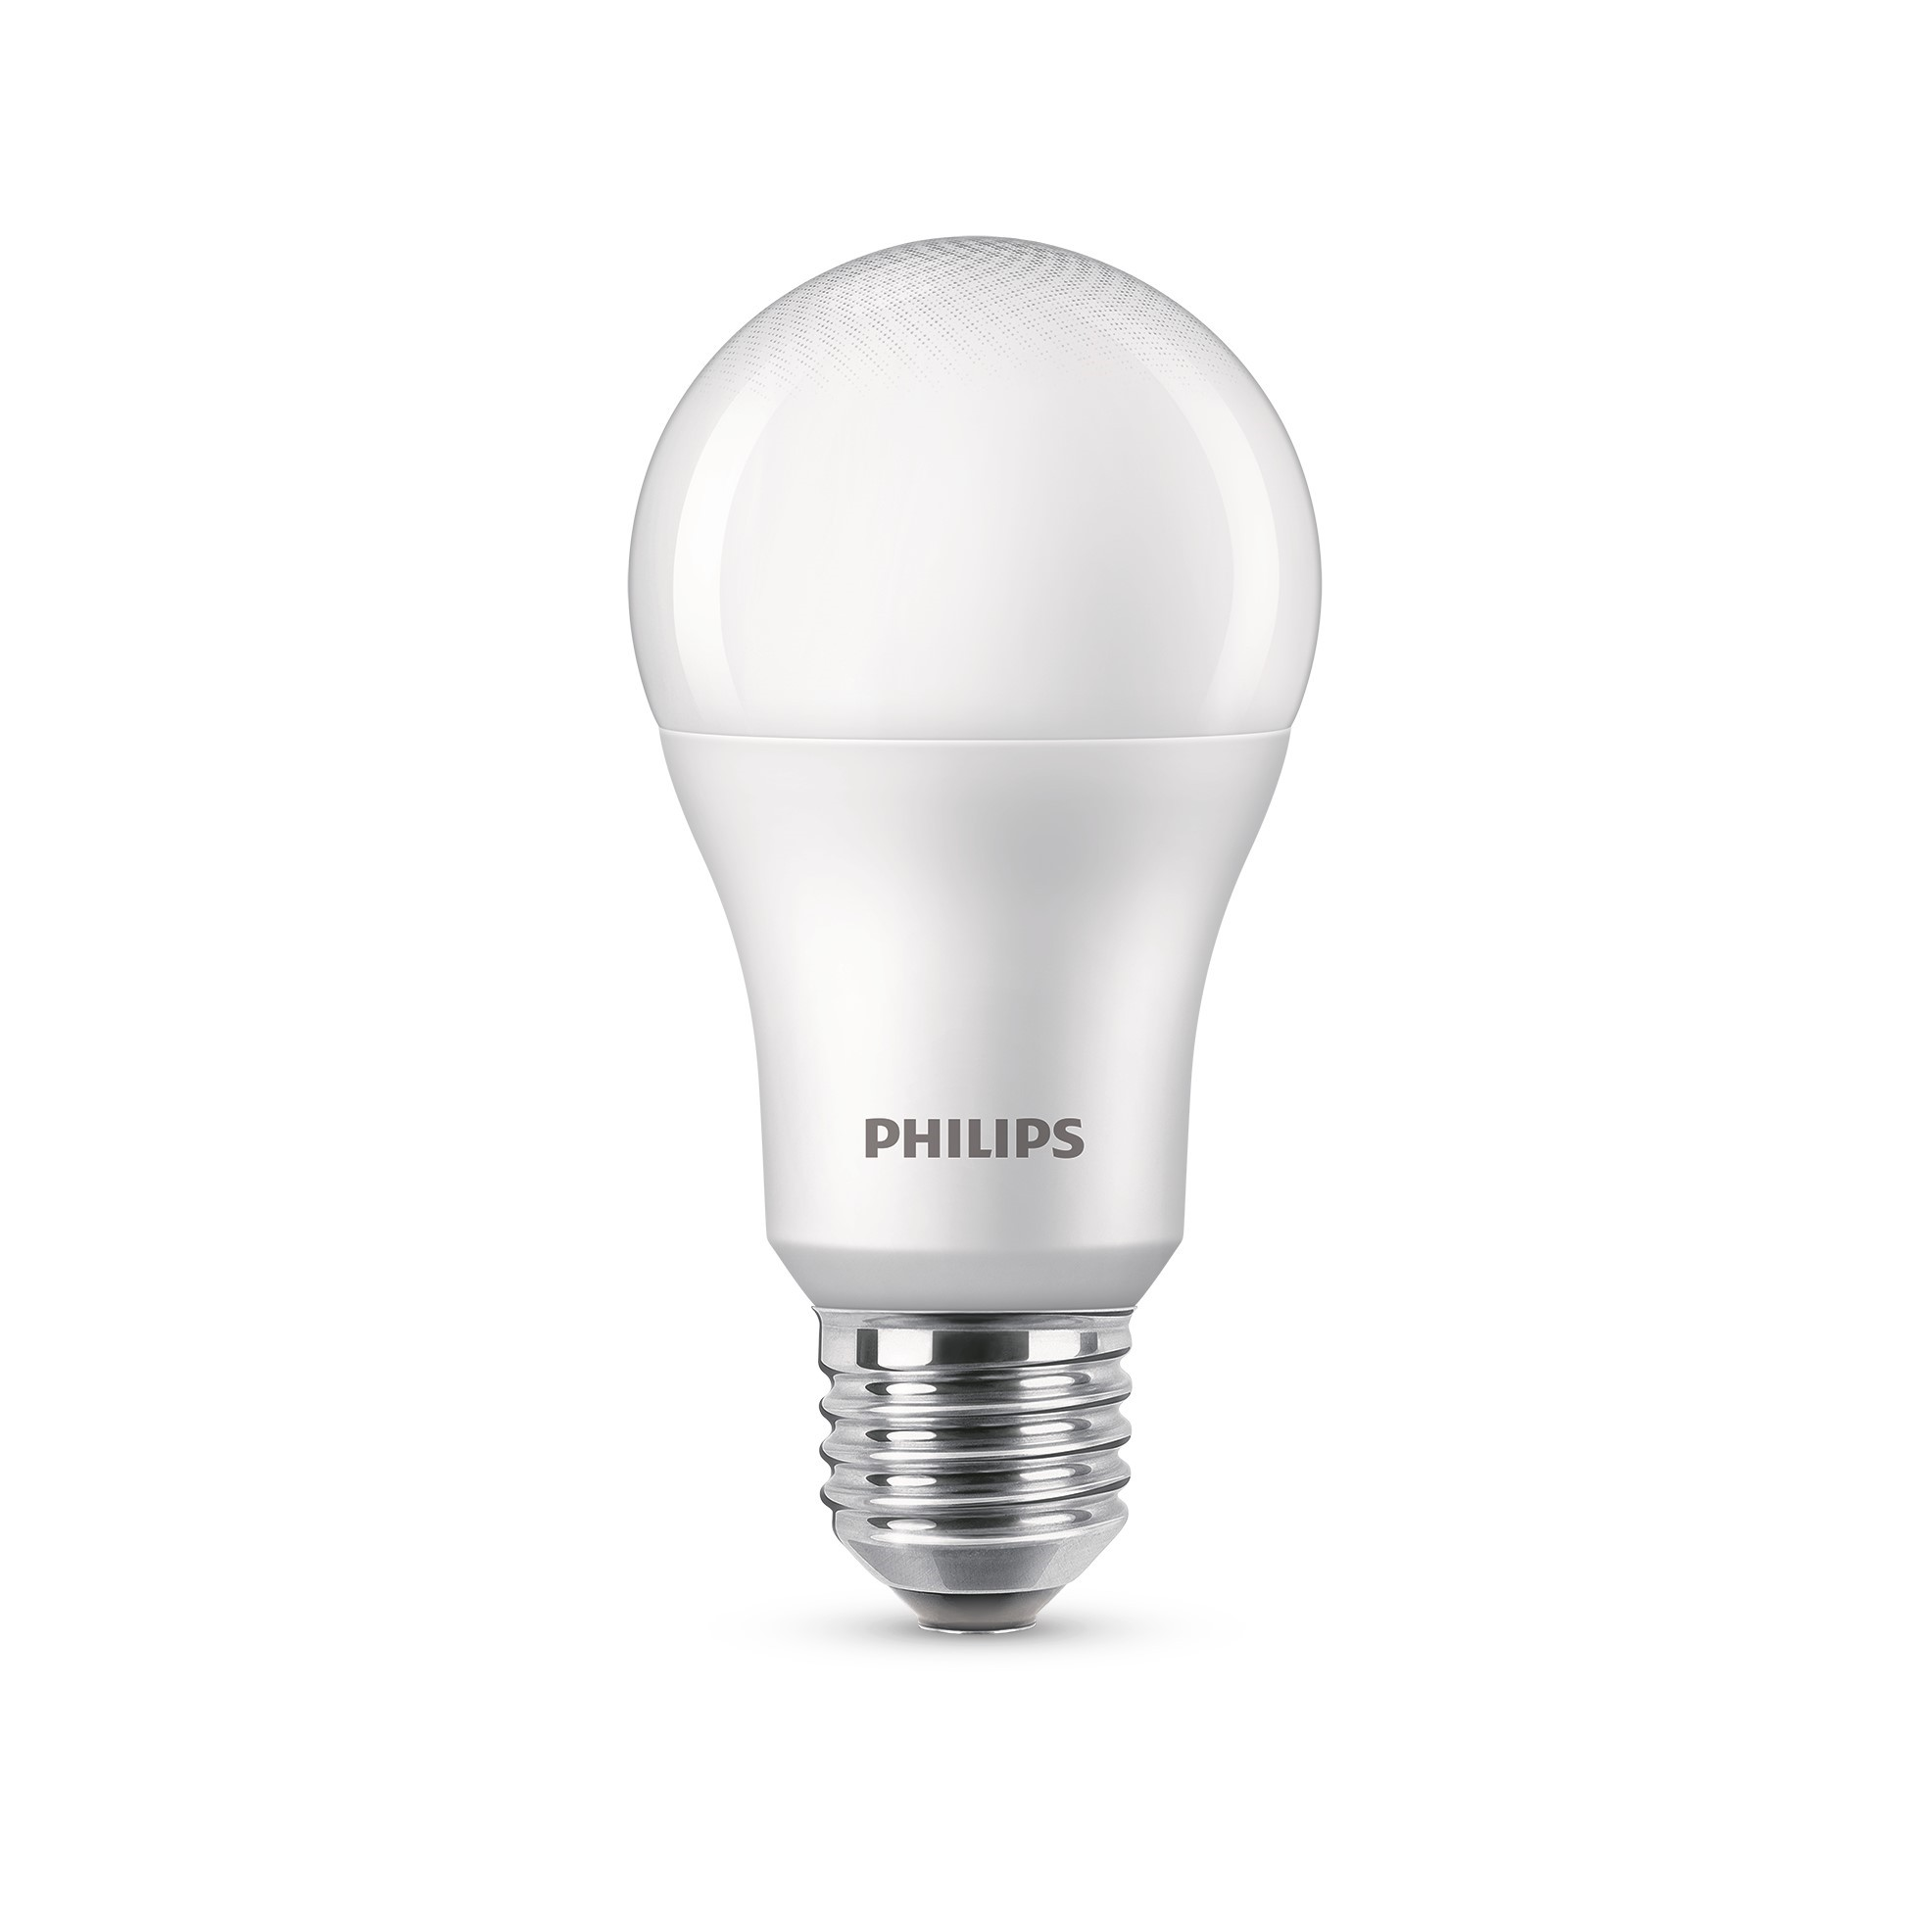 Lampada LED Bulbo 450W Luz Branca E27 - Philips